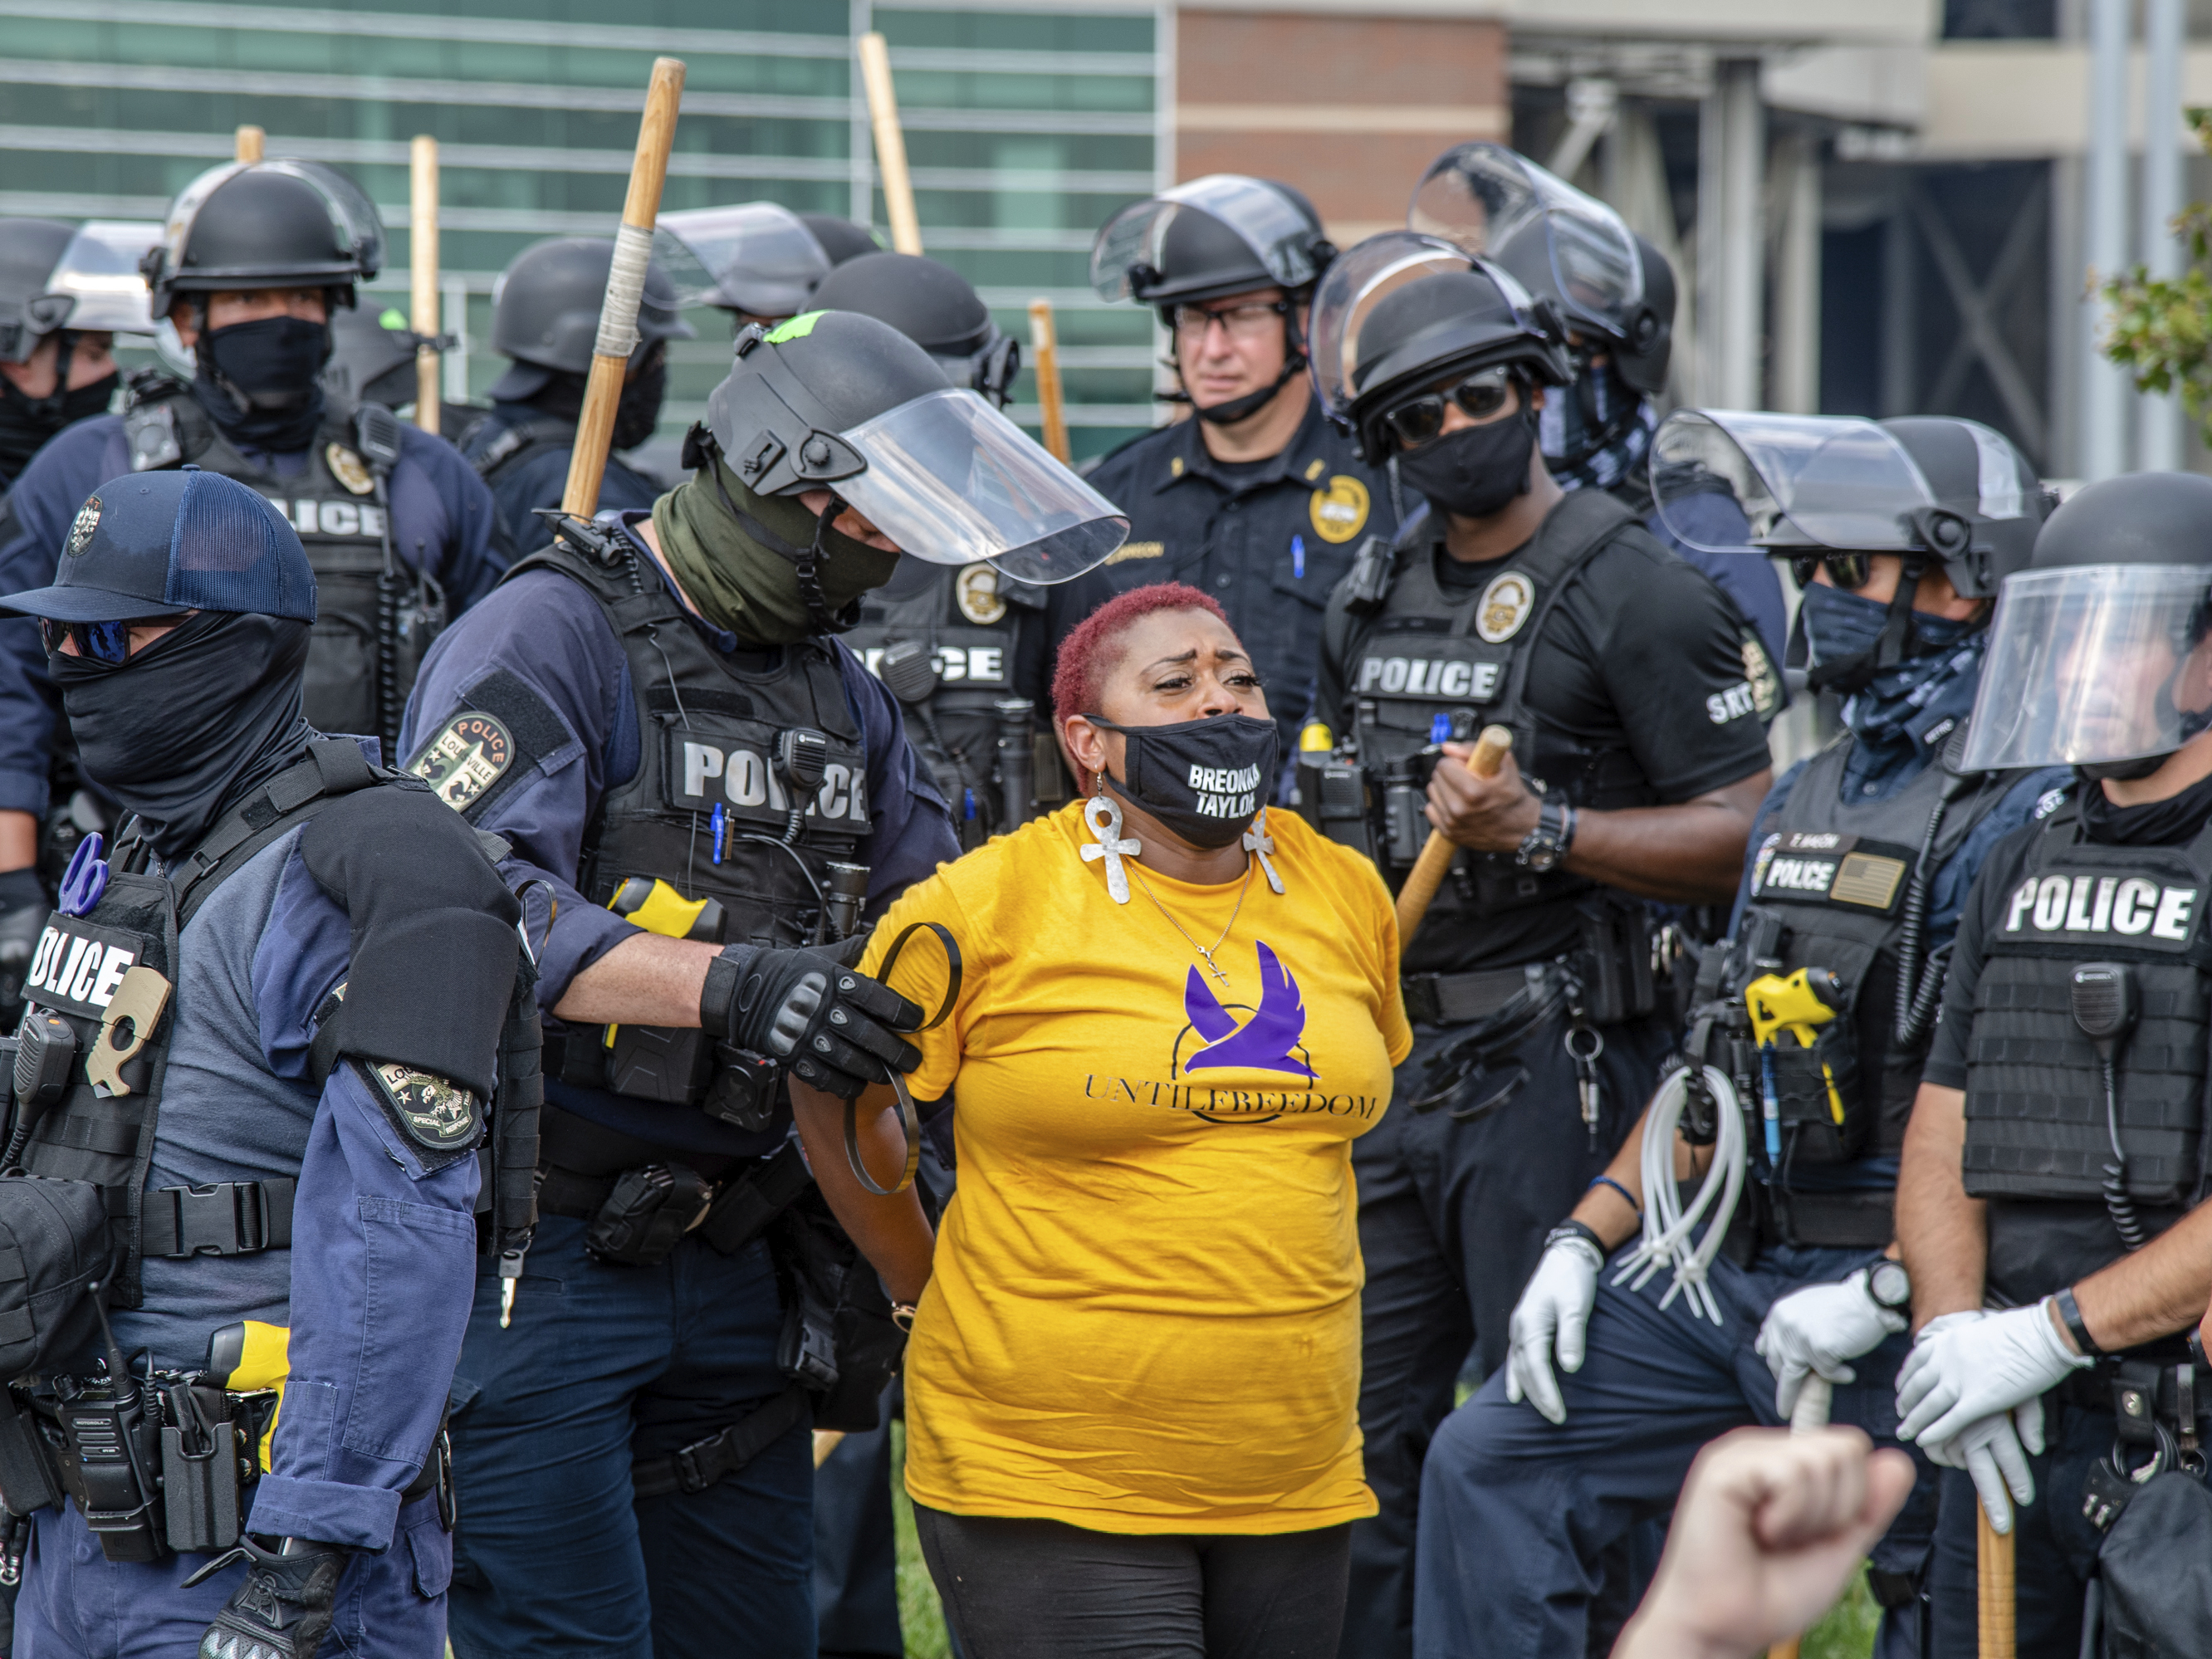 Dozens Arrested In Louisville Protest Demanding Justice For Breonna Taylor Live Updates Protests For Racial Justice Npr